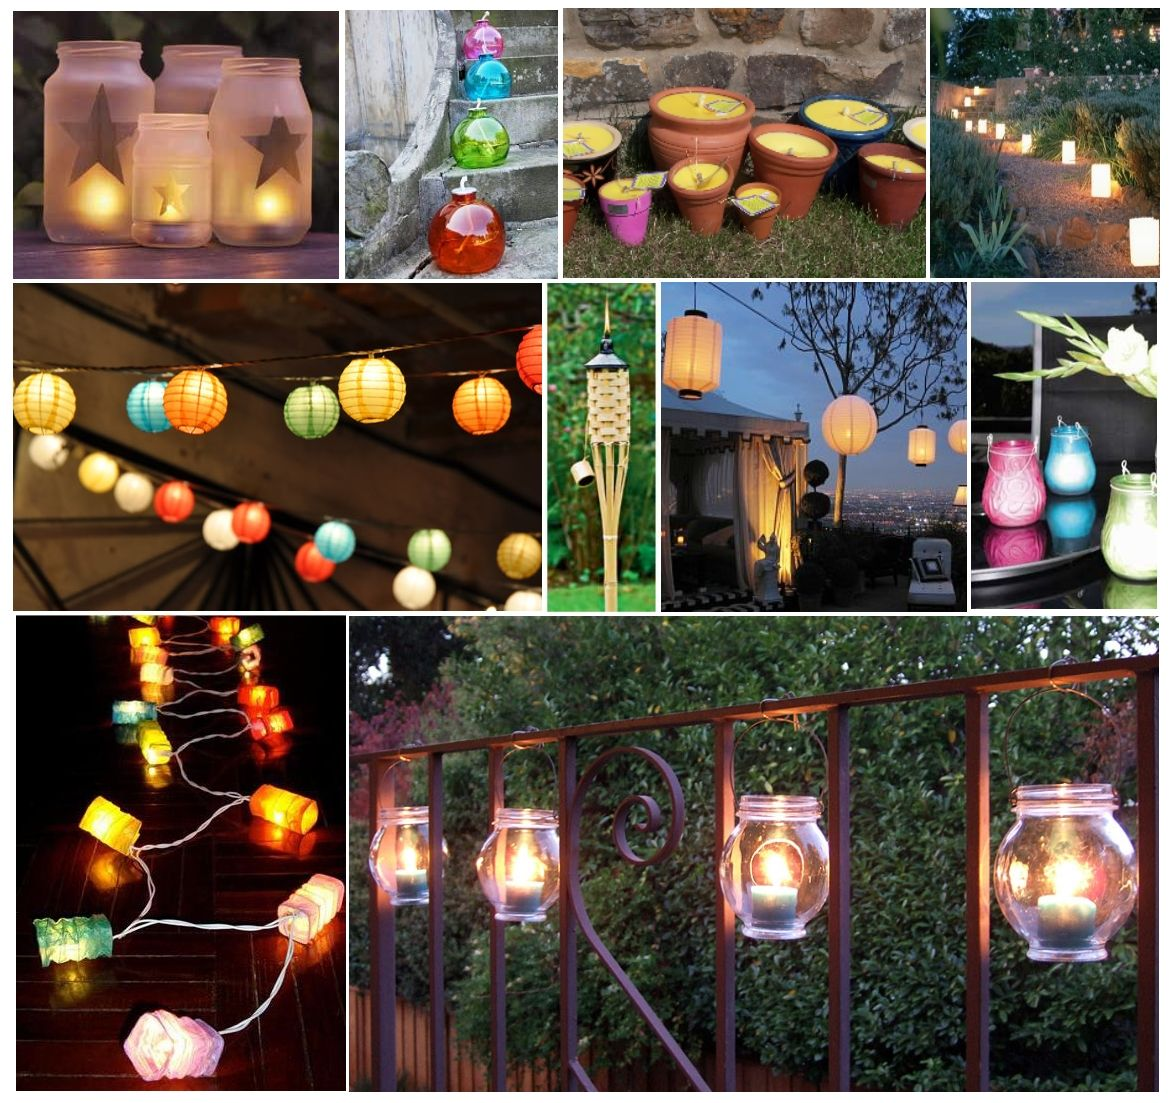 Lighting Ideas For Parties Bbq Decorations Outdoor Graduation Parties Graduation Party Decor